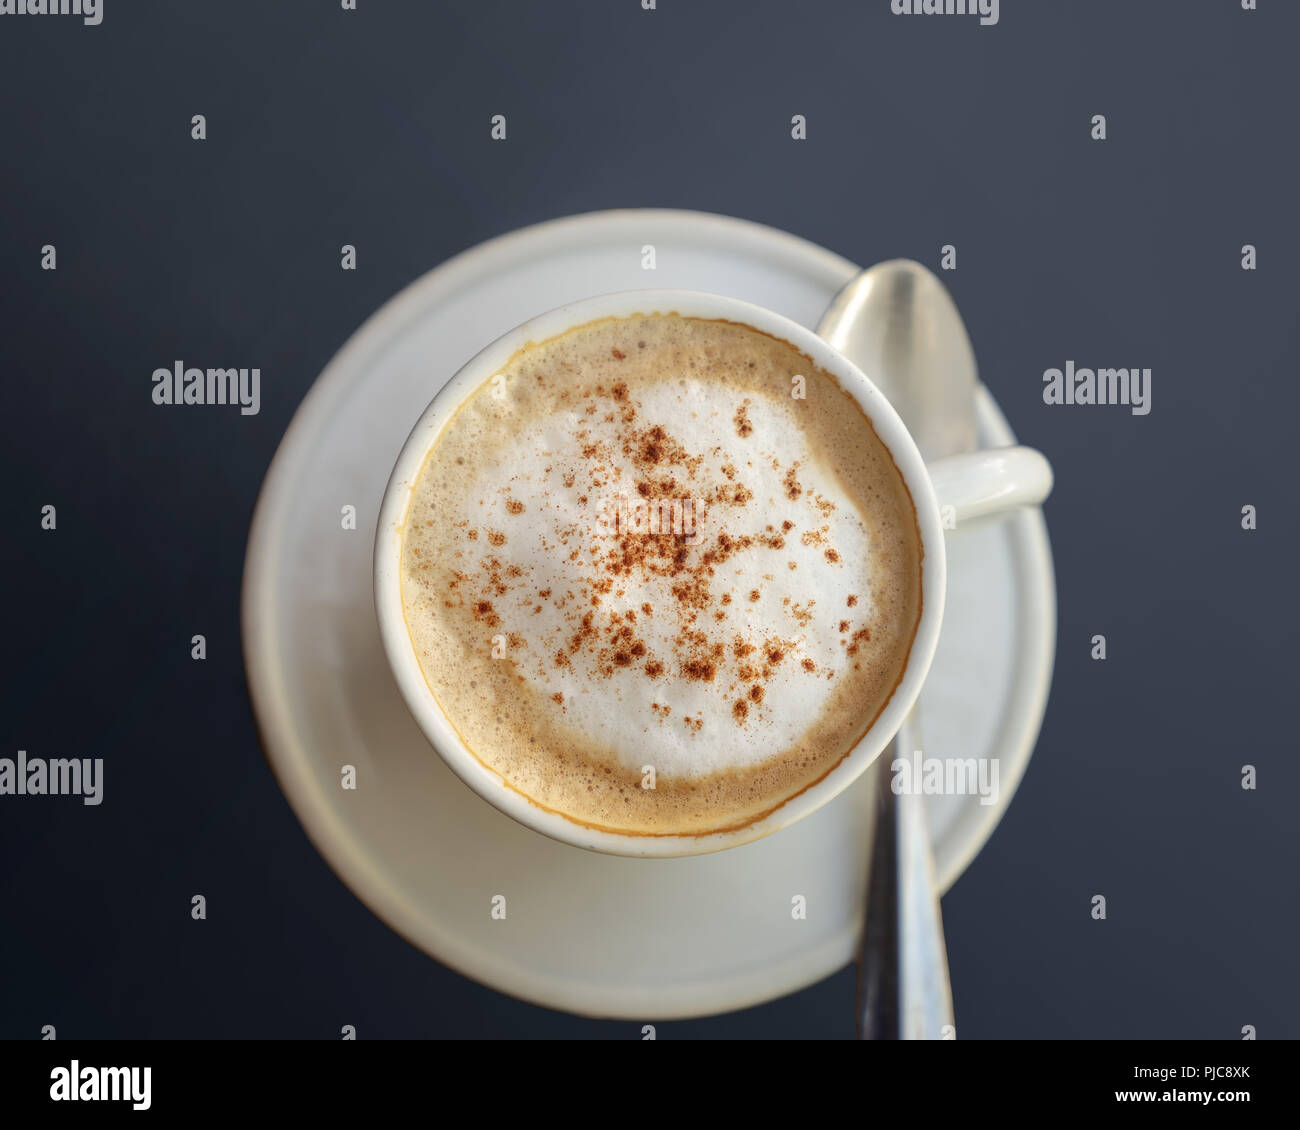 Caffe Latte Caffe Latte Coffee Drink In Cup And Saucer Show From Above Stock